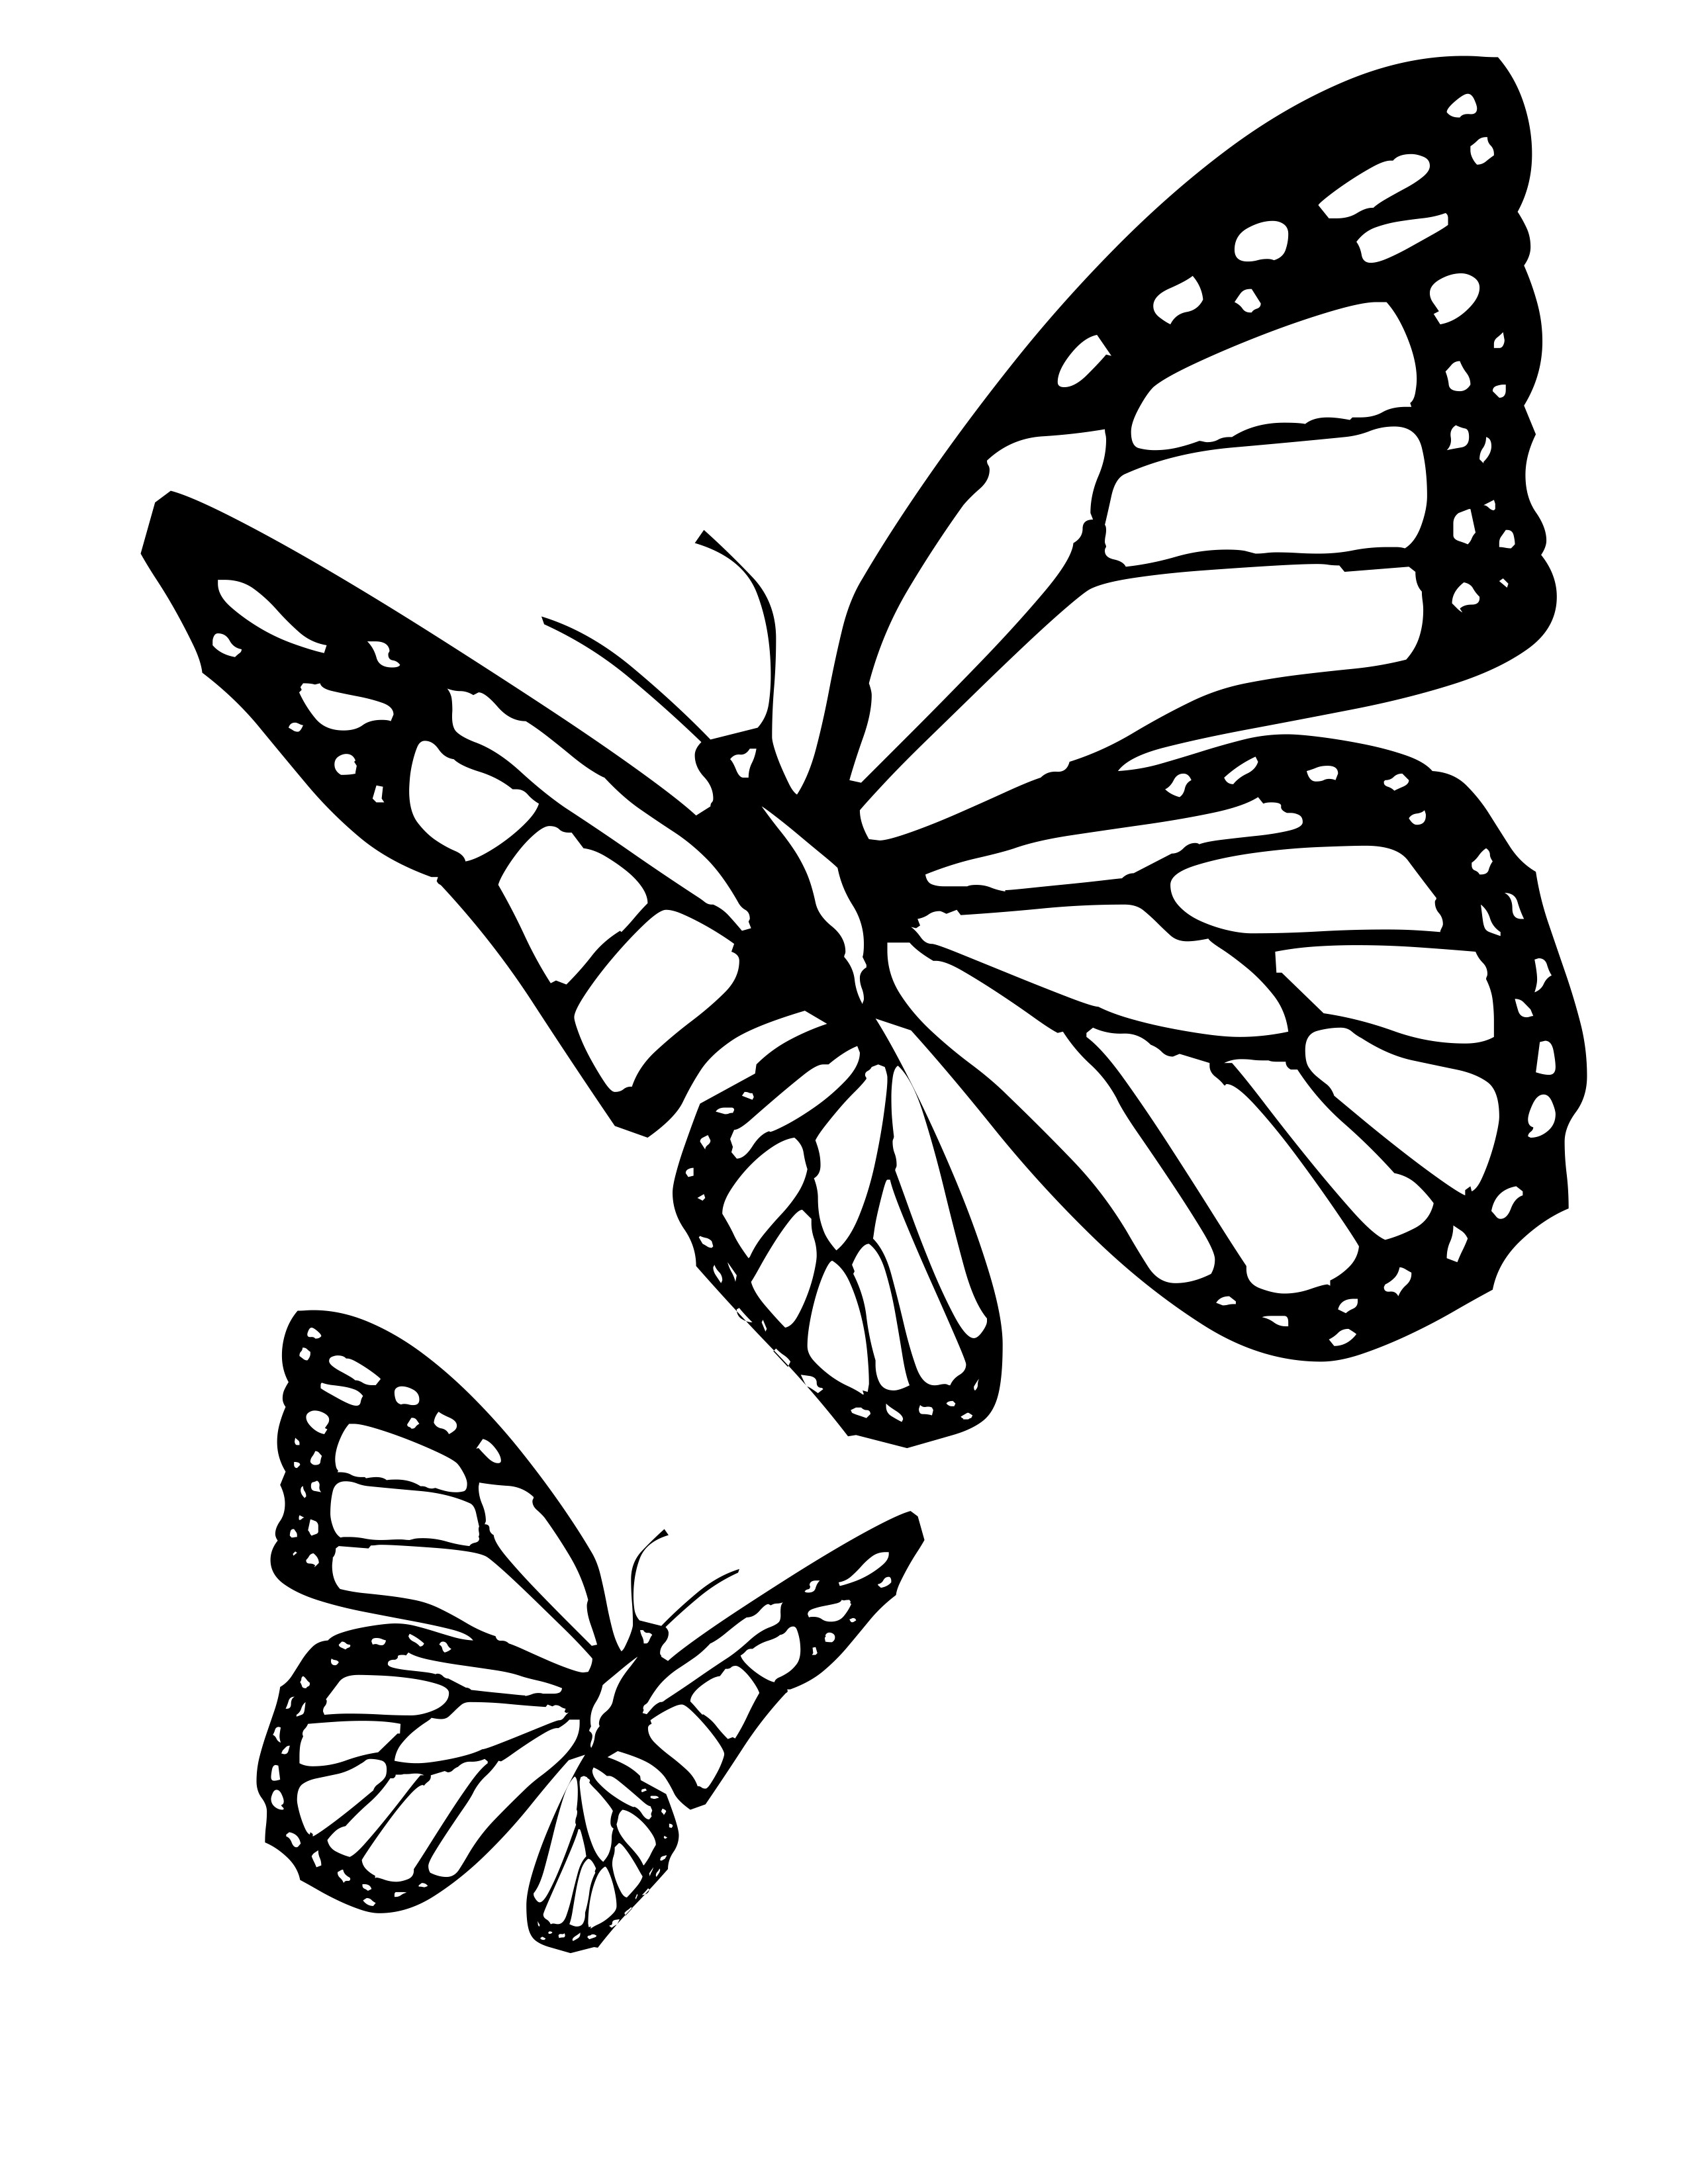 printable butterflies free printable butterfly colouring pages in the playroom butterflies printable